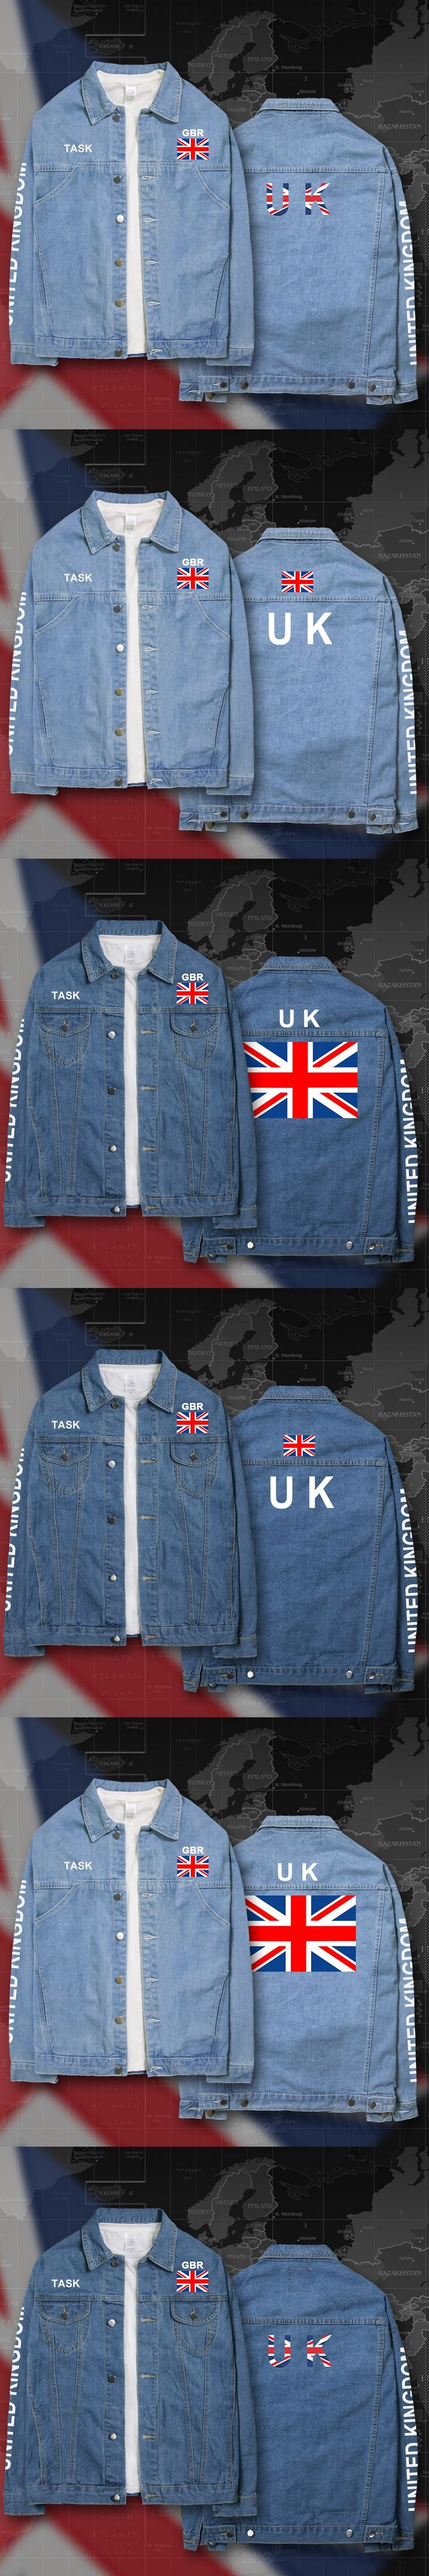 UK United Kingdom of Great Britain GBR denim jackets men coat men's suits jeans jacket thin jaquetas 2017 sunscreen autumn flag